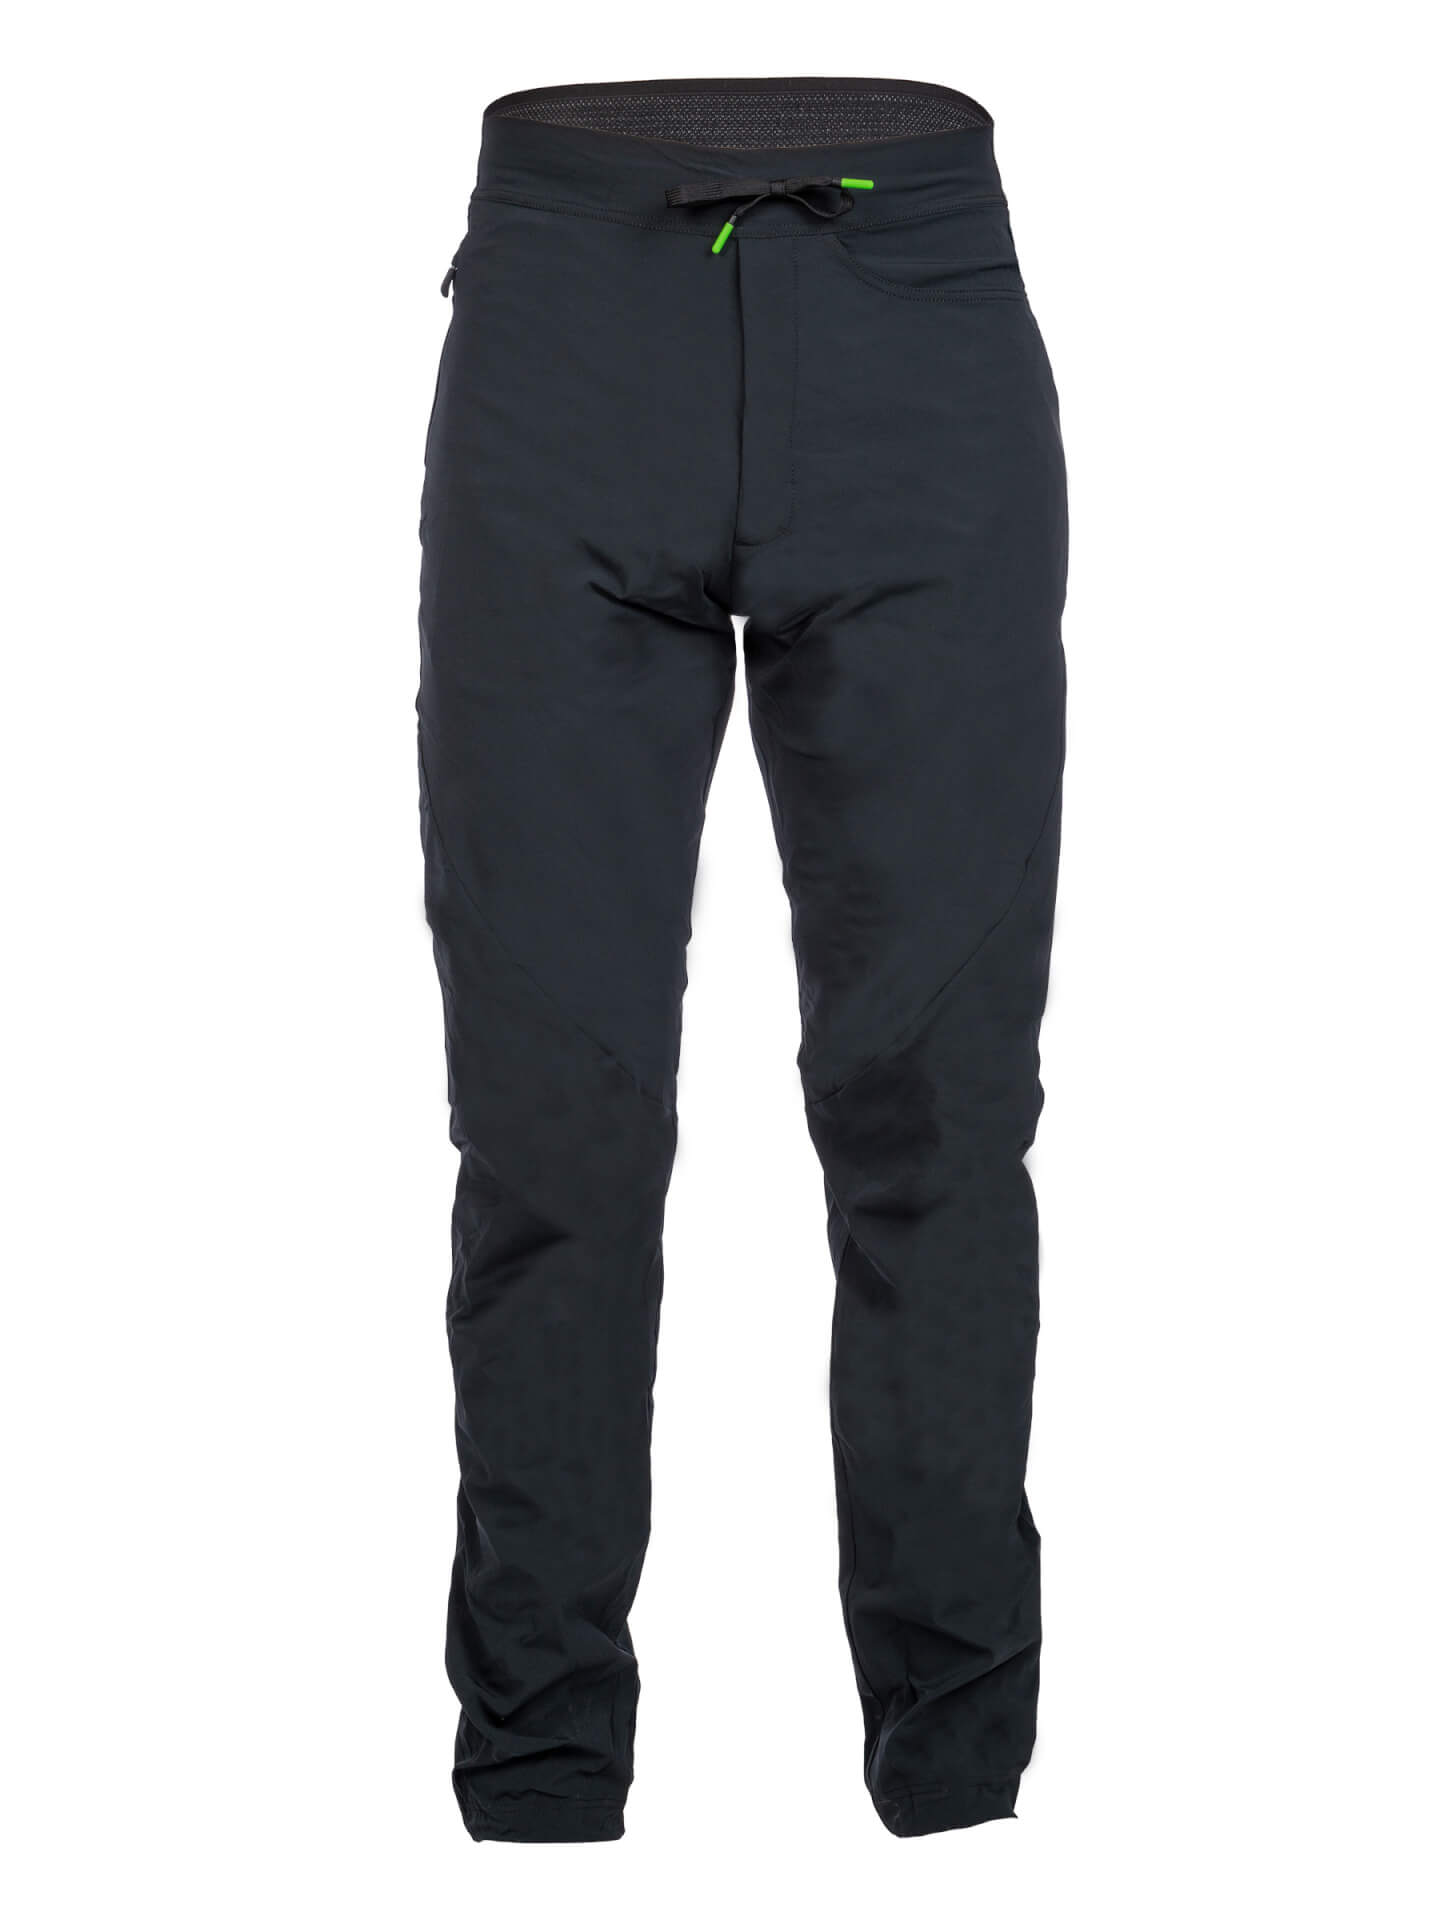 men's active trousers - premium activerwear